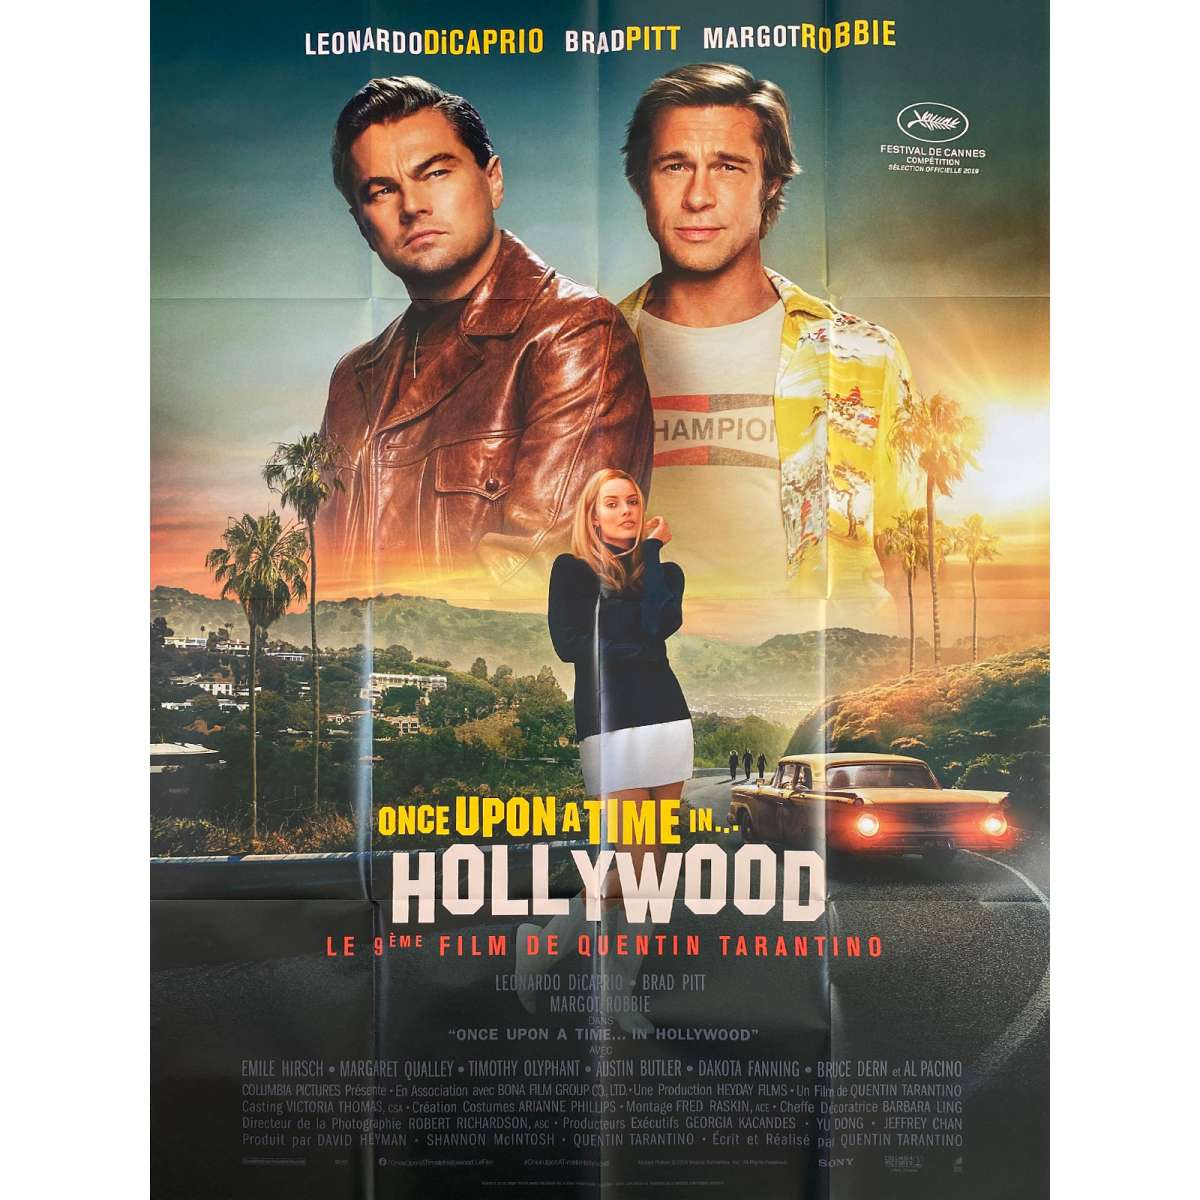 once upon a time in hollywood original movie poster 47x63 in 2019 quentin tarantino leonardo dicaprio